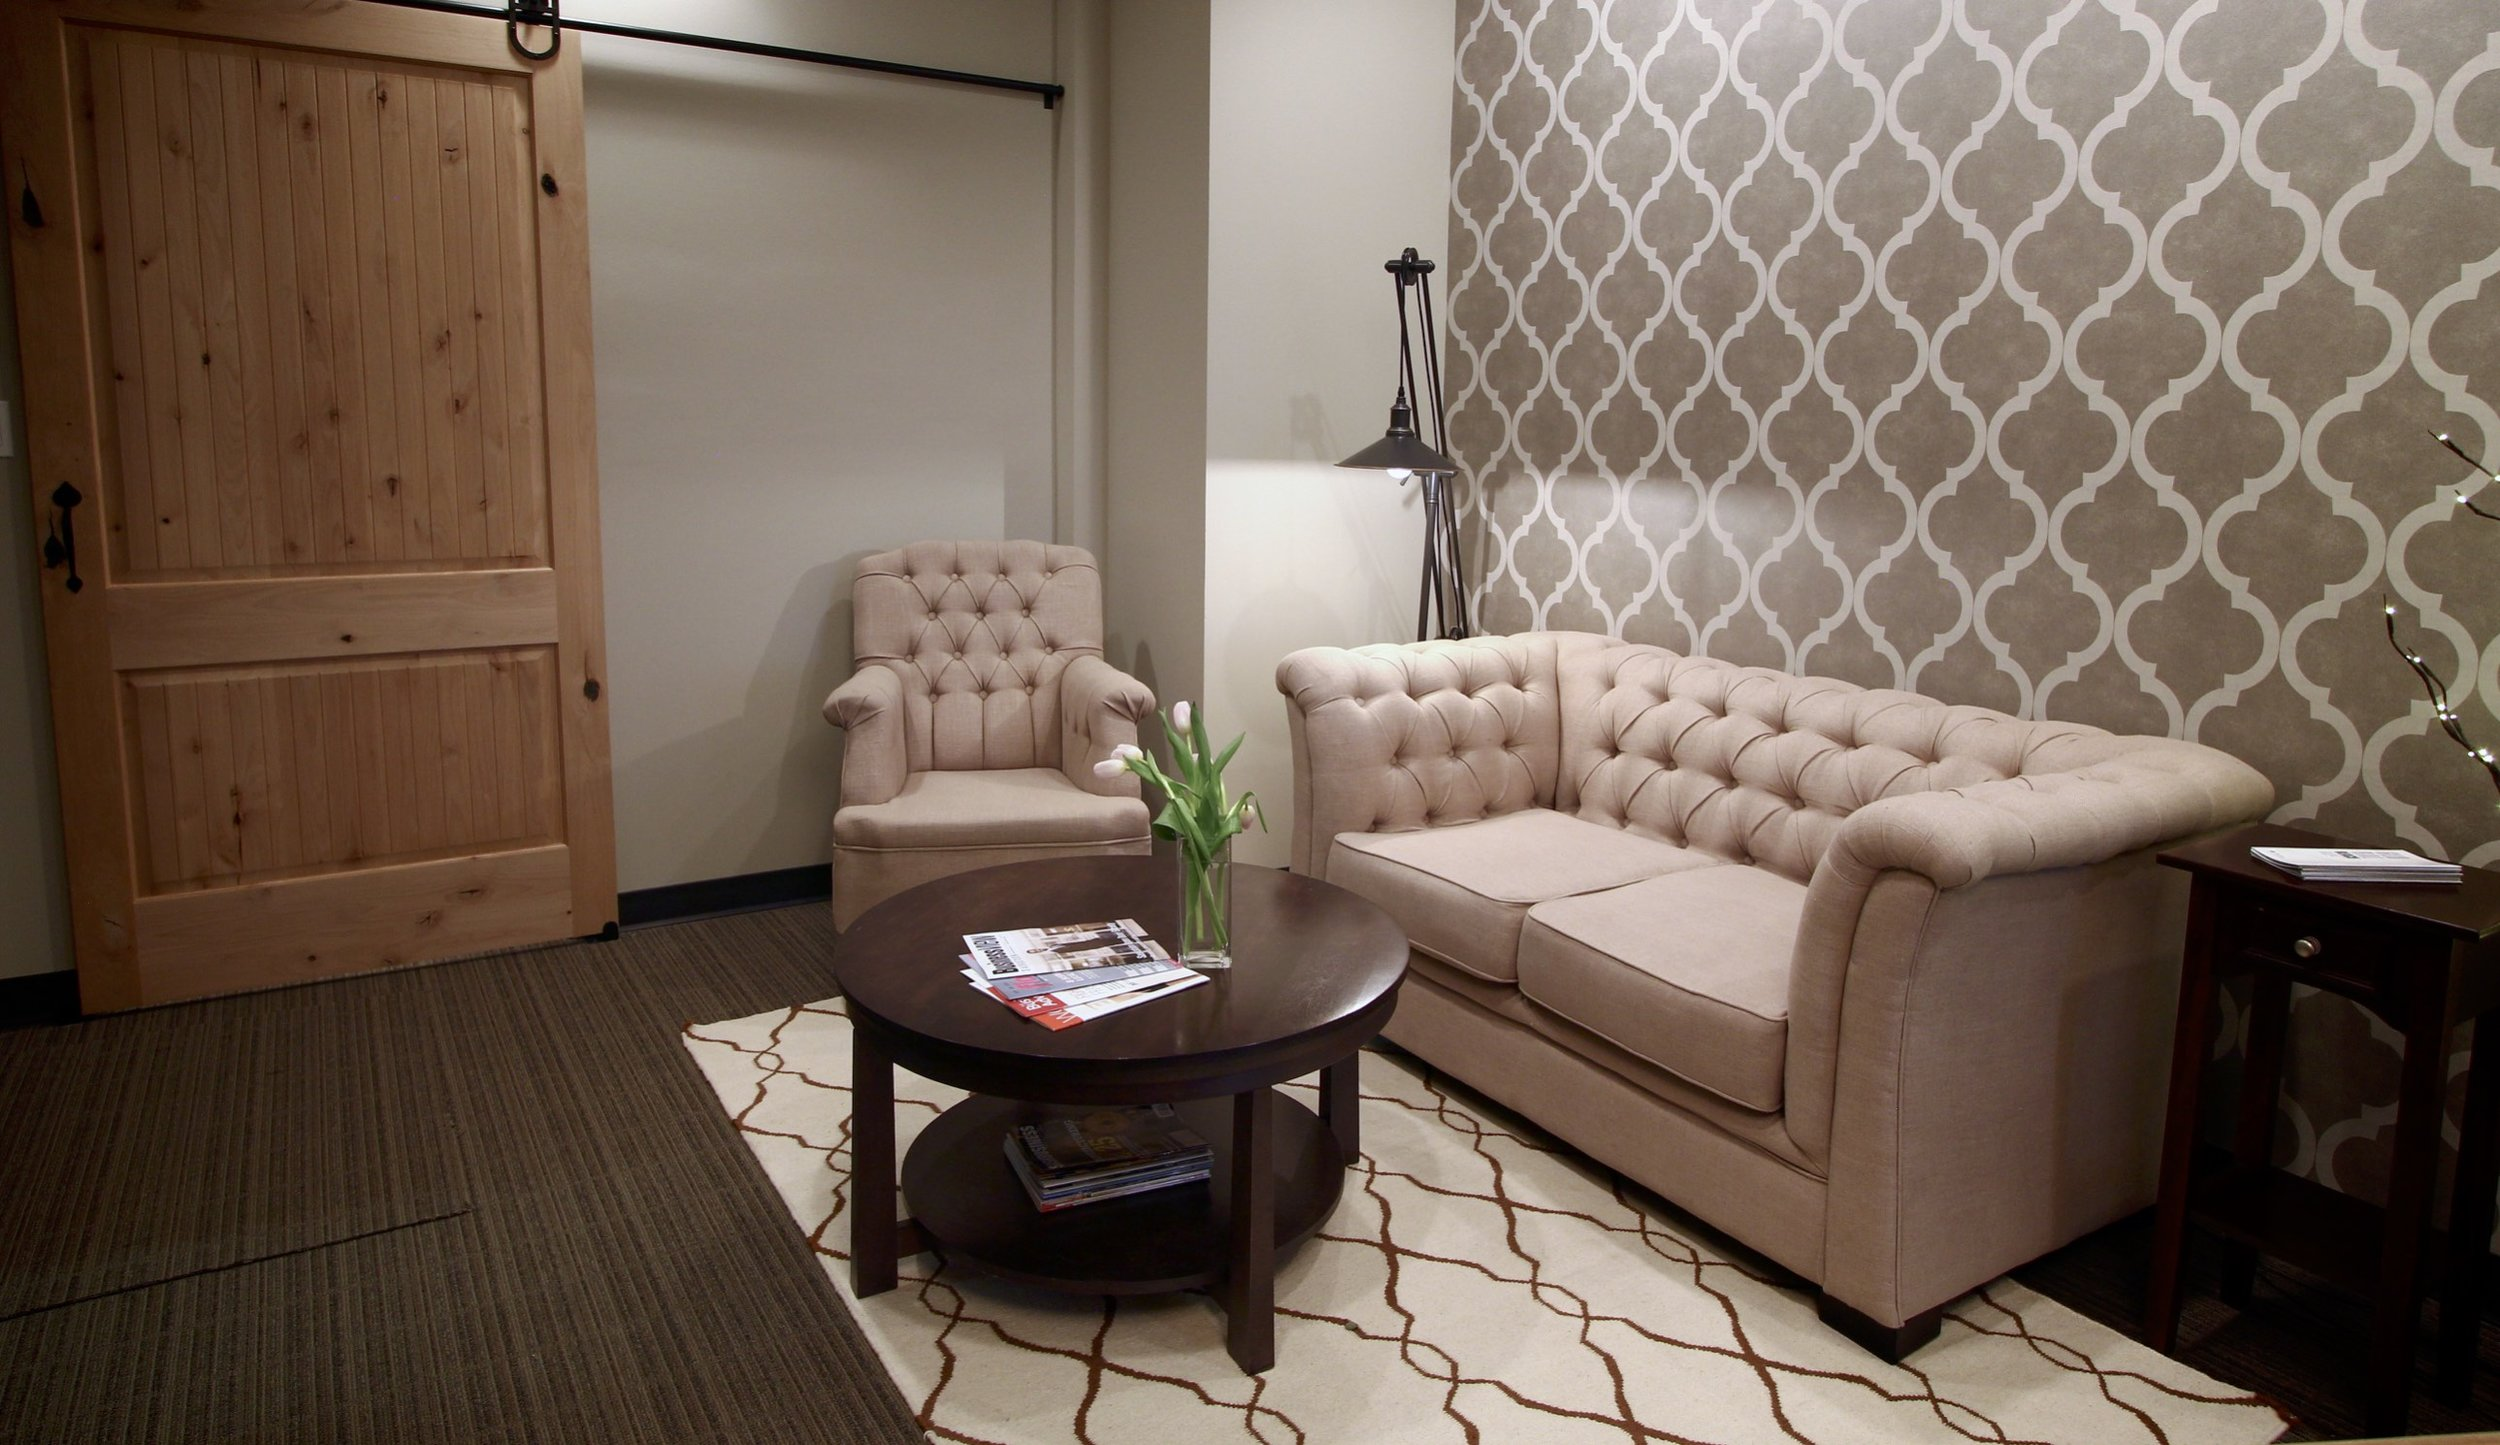 Metric Design Centre, Interior Design, Saskatoon, Commercial Design, Front Entrance, Waiting Room, Office, Rustic, Feature Wall, Barn Door, Tufted Sofa, Coffee Table, Rug.jpg